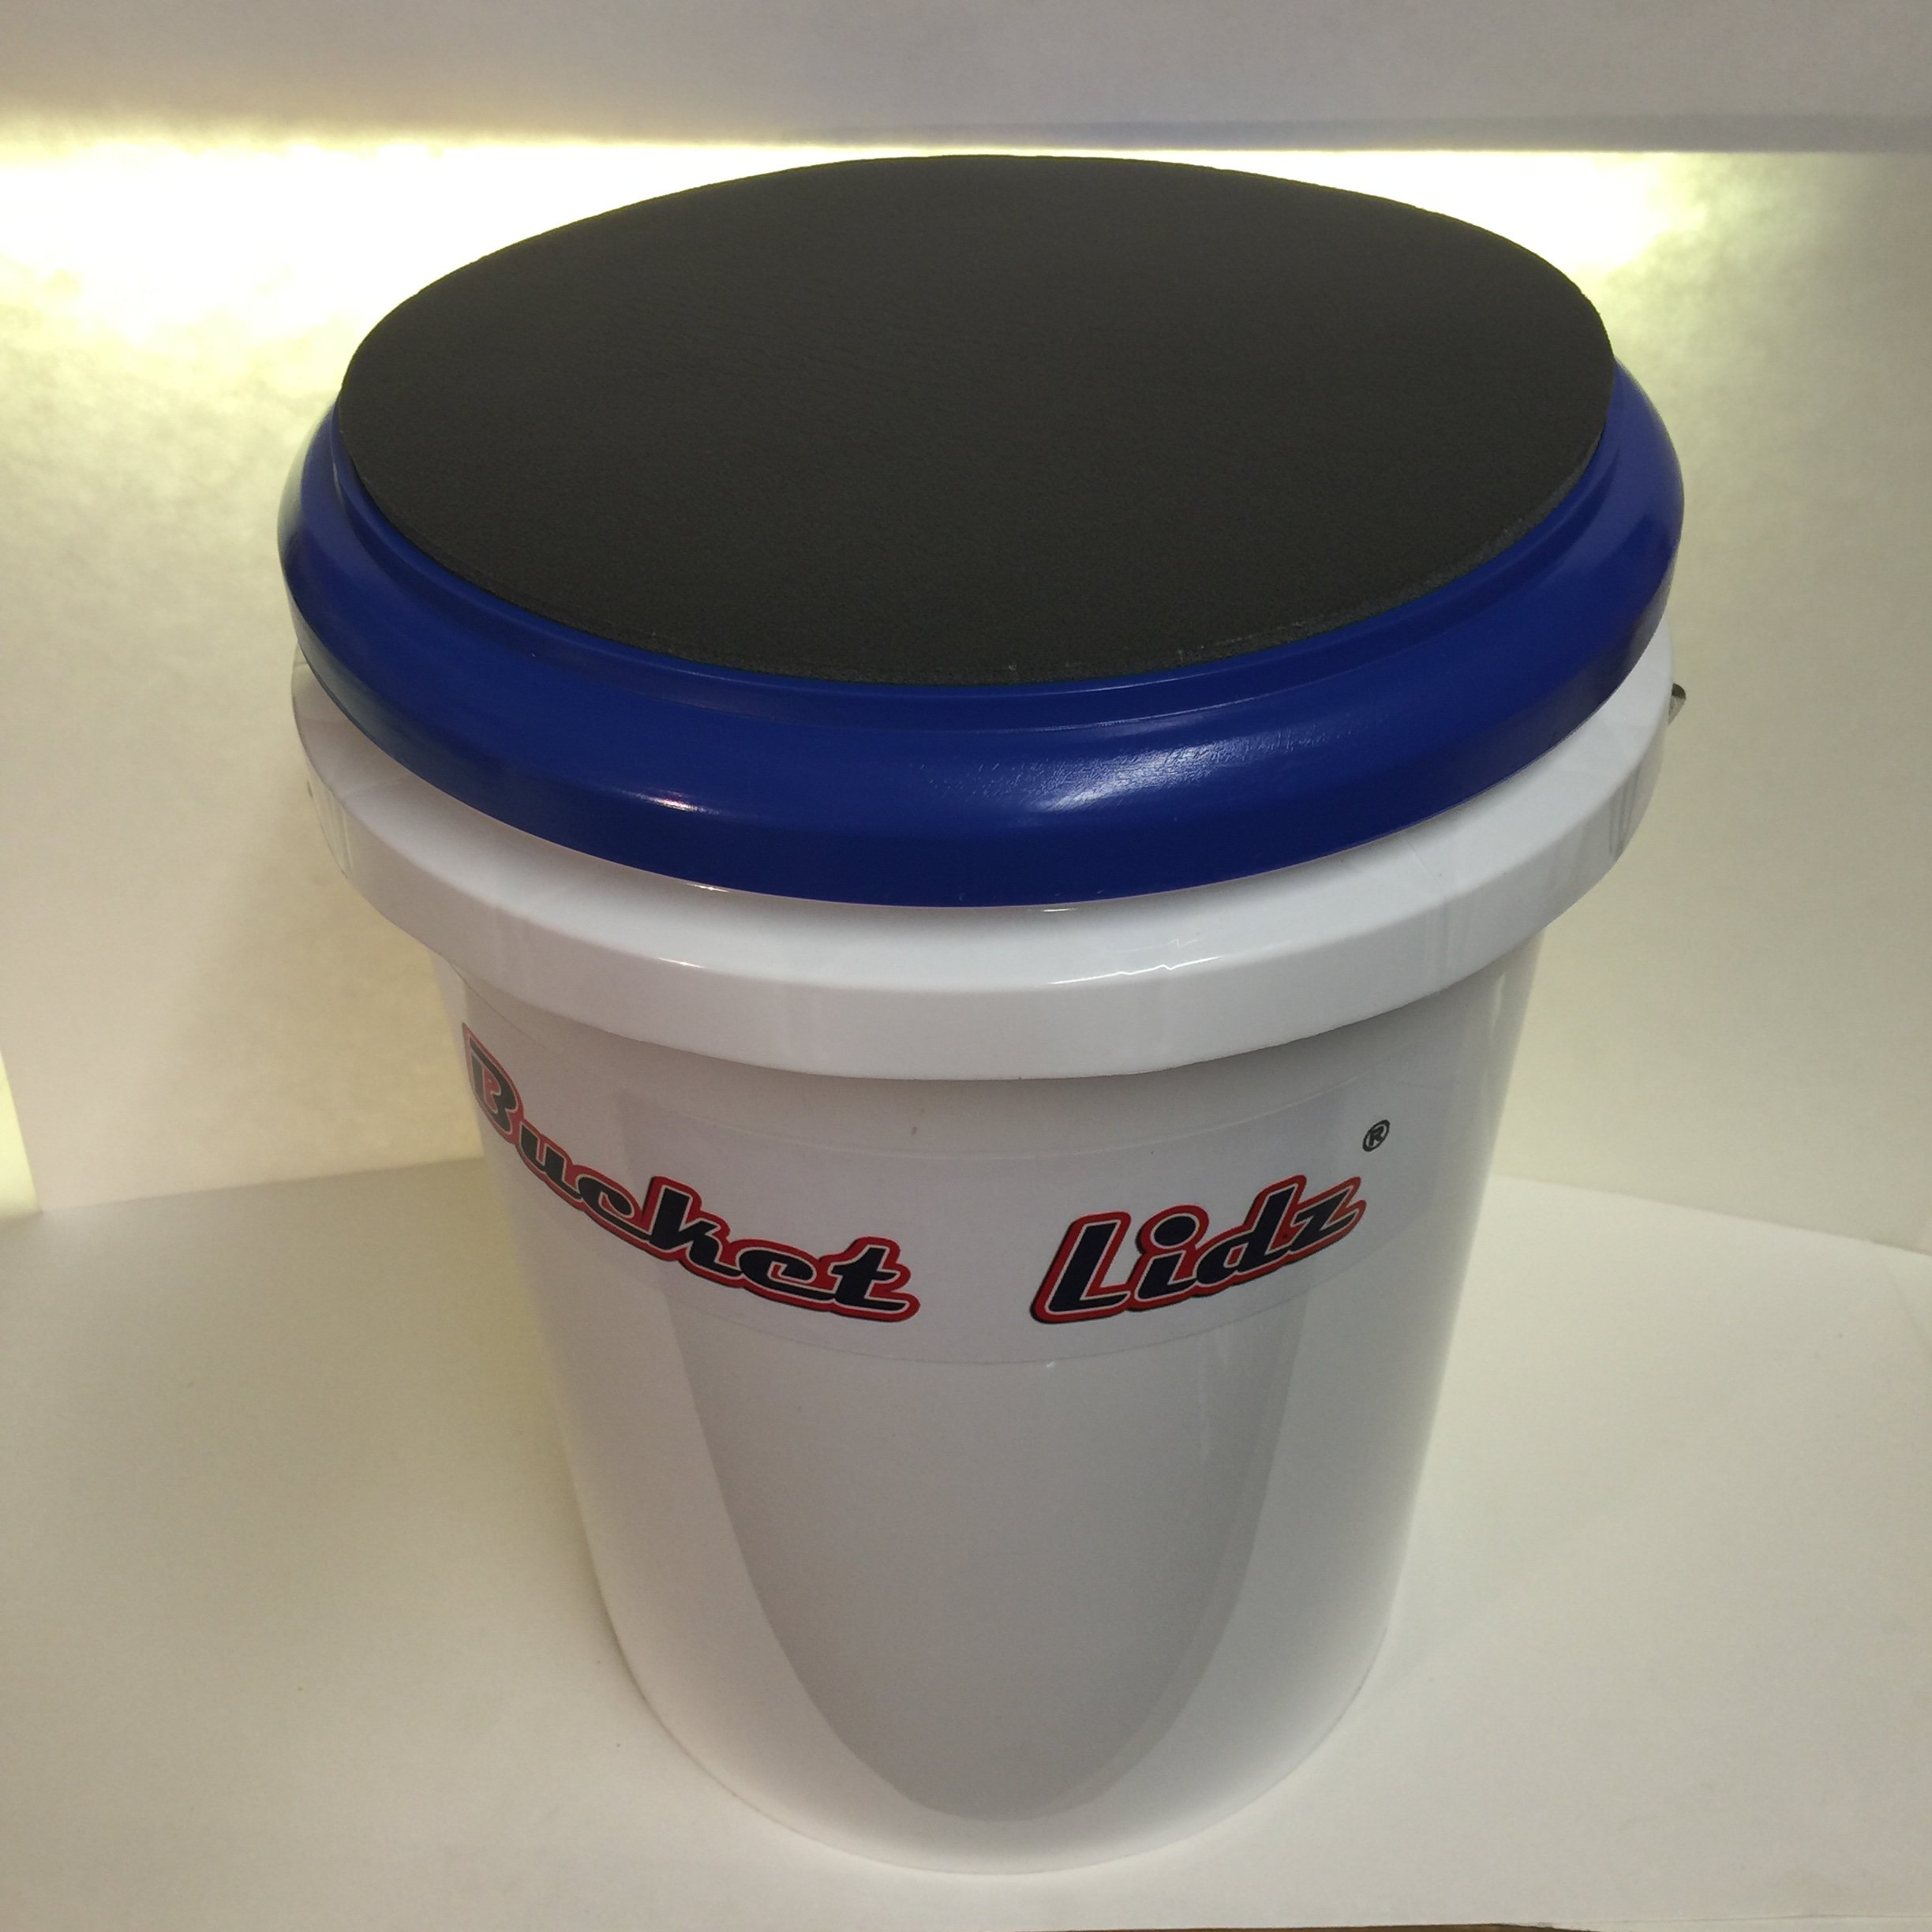 Padded bucket lid/seat (Red) by Bucket Lidz (Red frame/black pad)